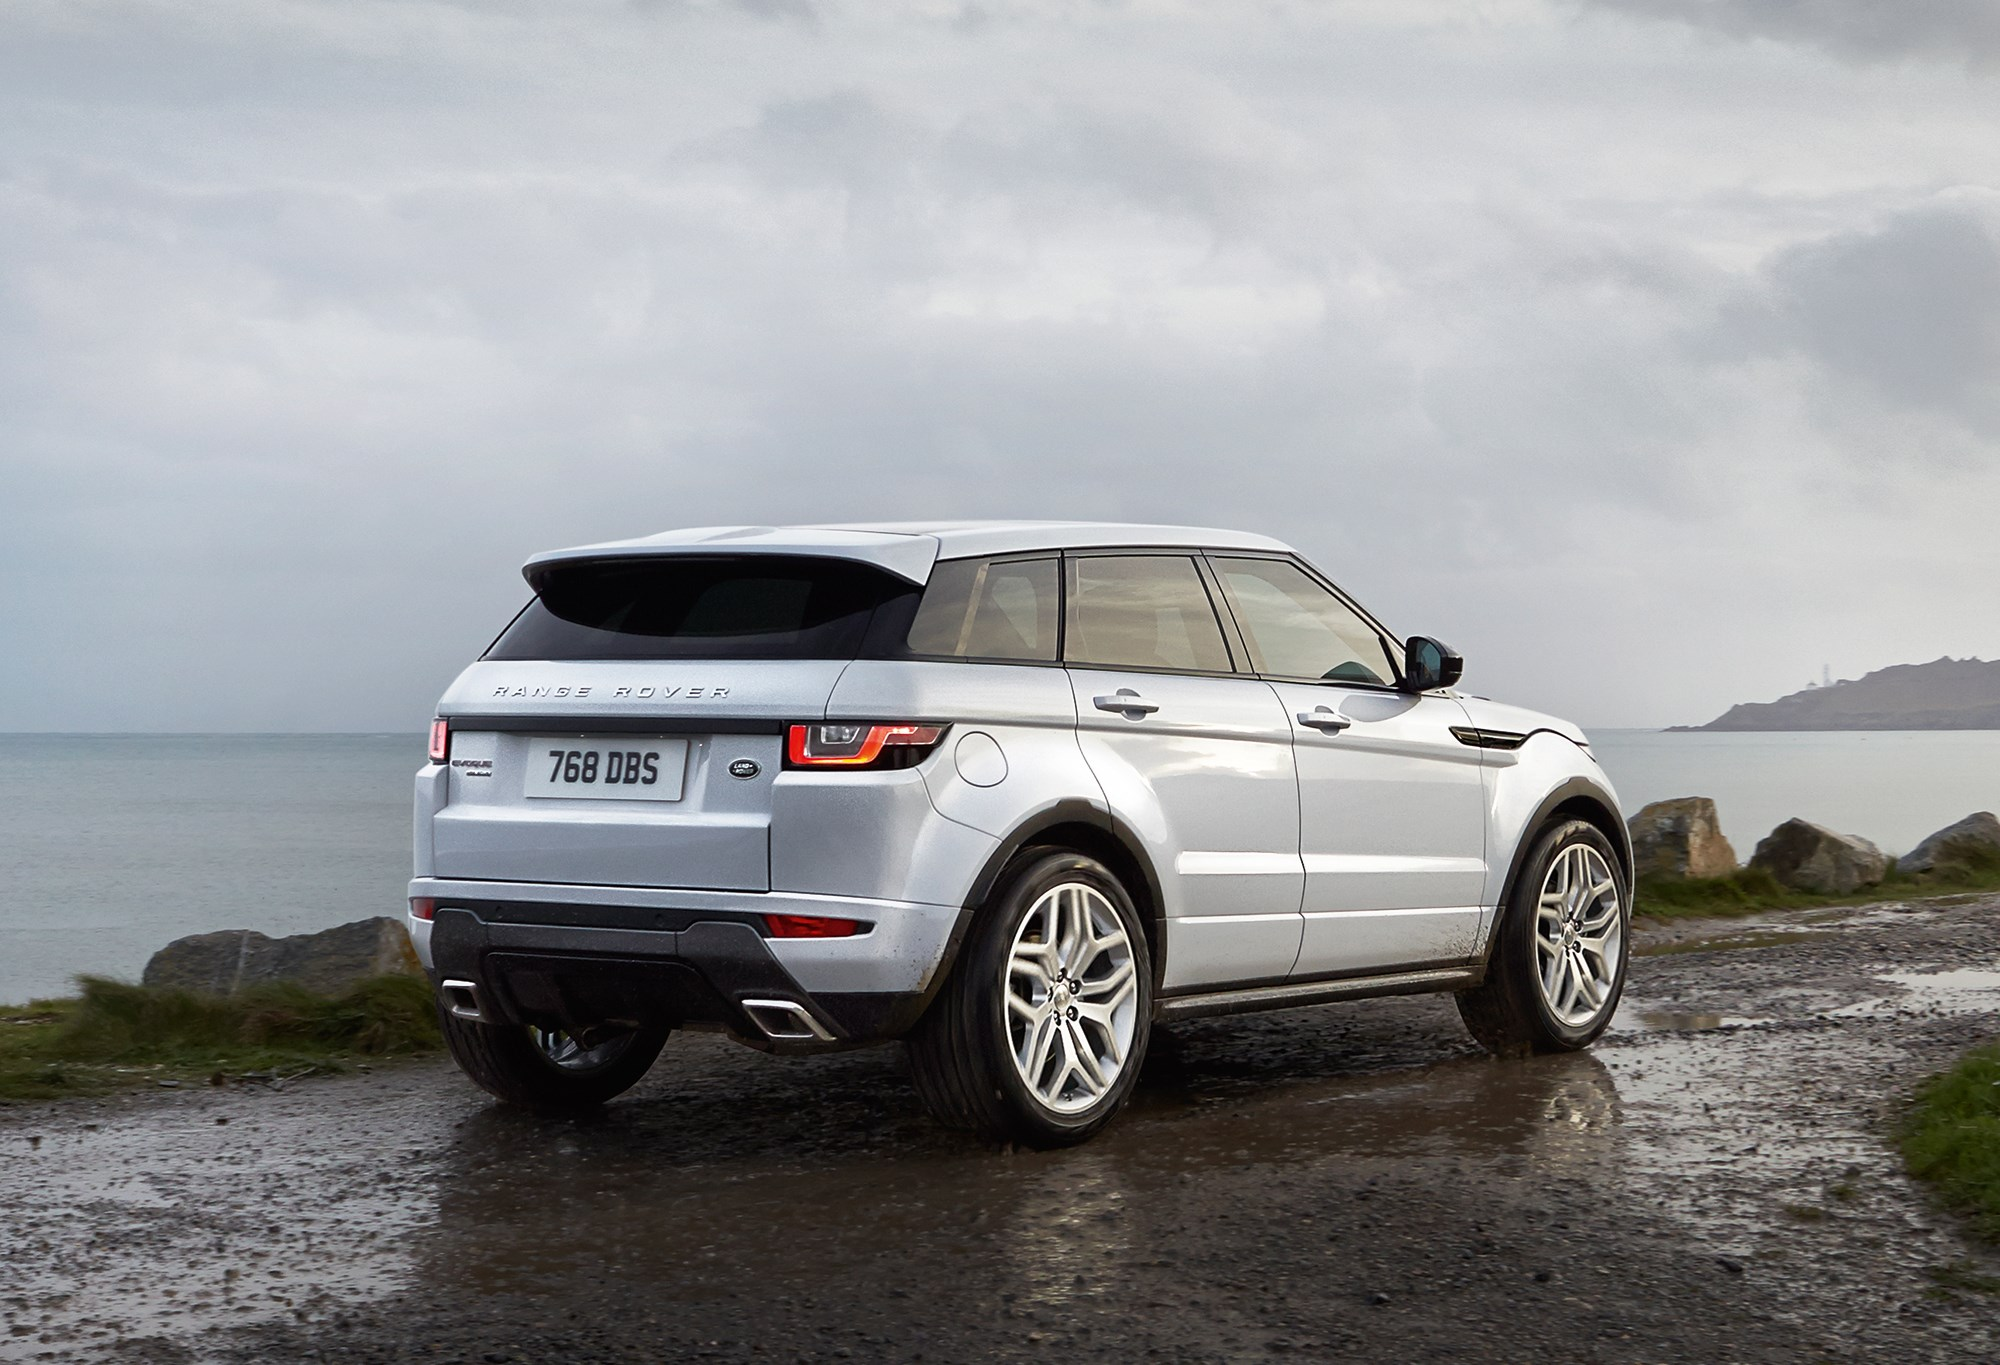 range rover evoque 2016 sweeps in with fresh wardrobe by car magazine. Black Bedroom Furniture Sets. Home Design Ideas